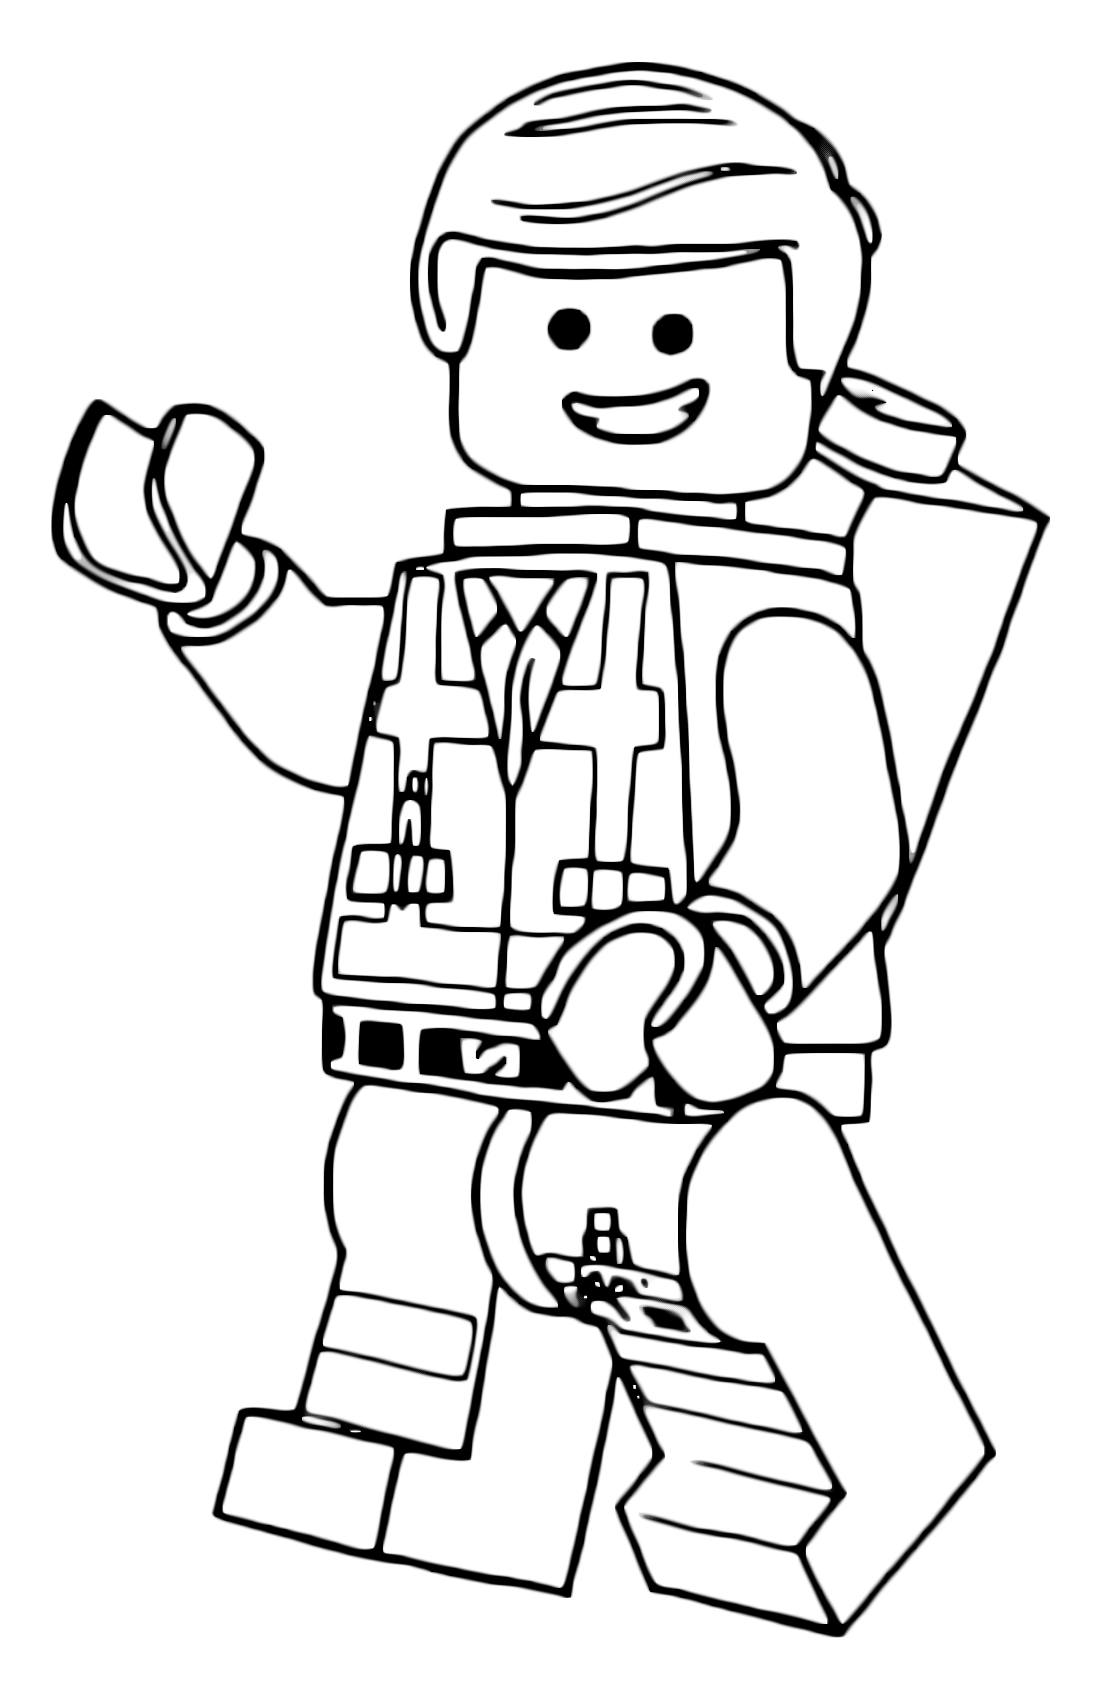 lego coloring sheets lego coloring pages free download on clipartmag sheets lego coloring